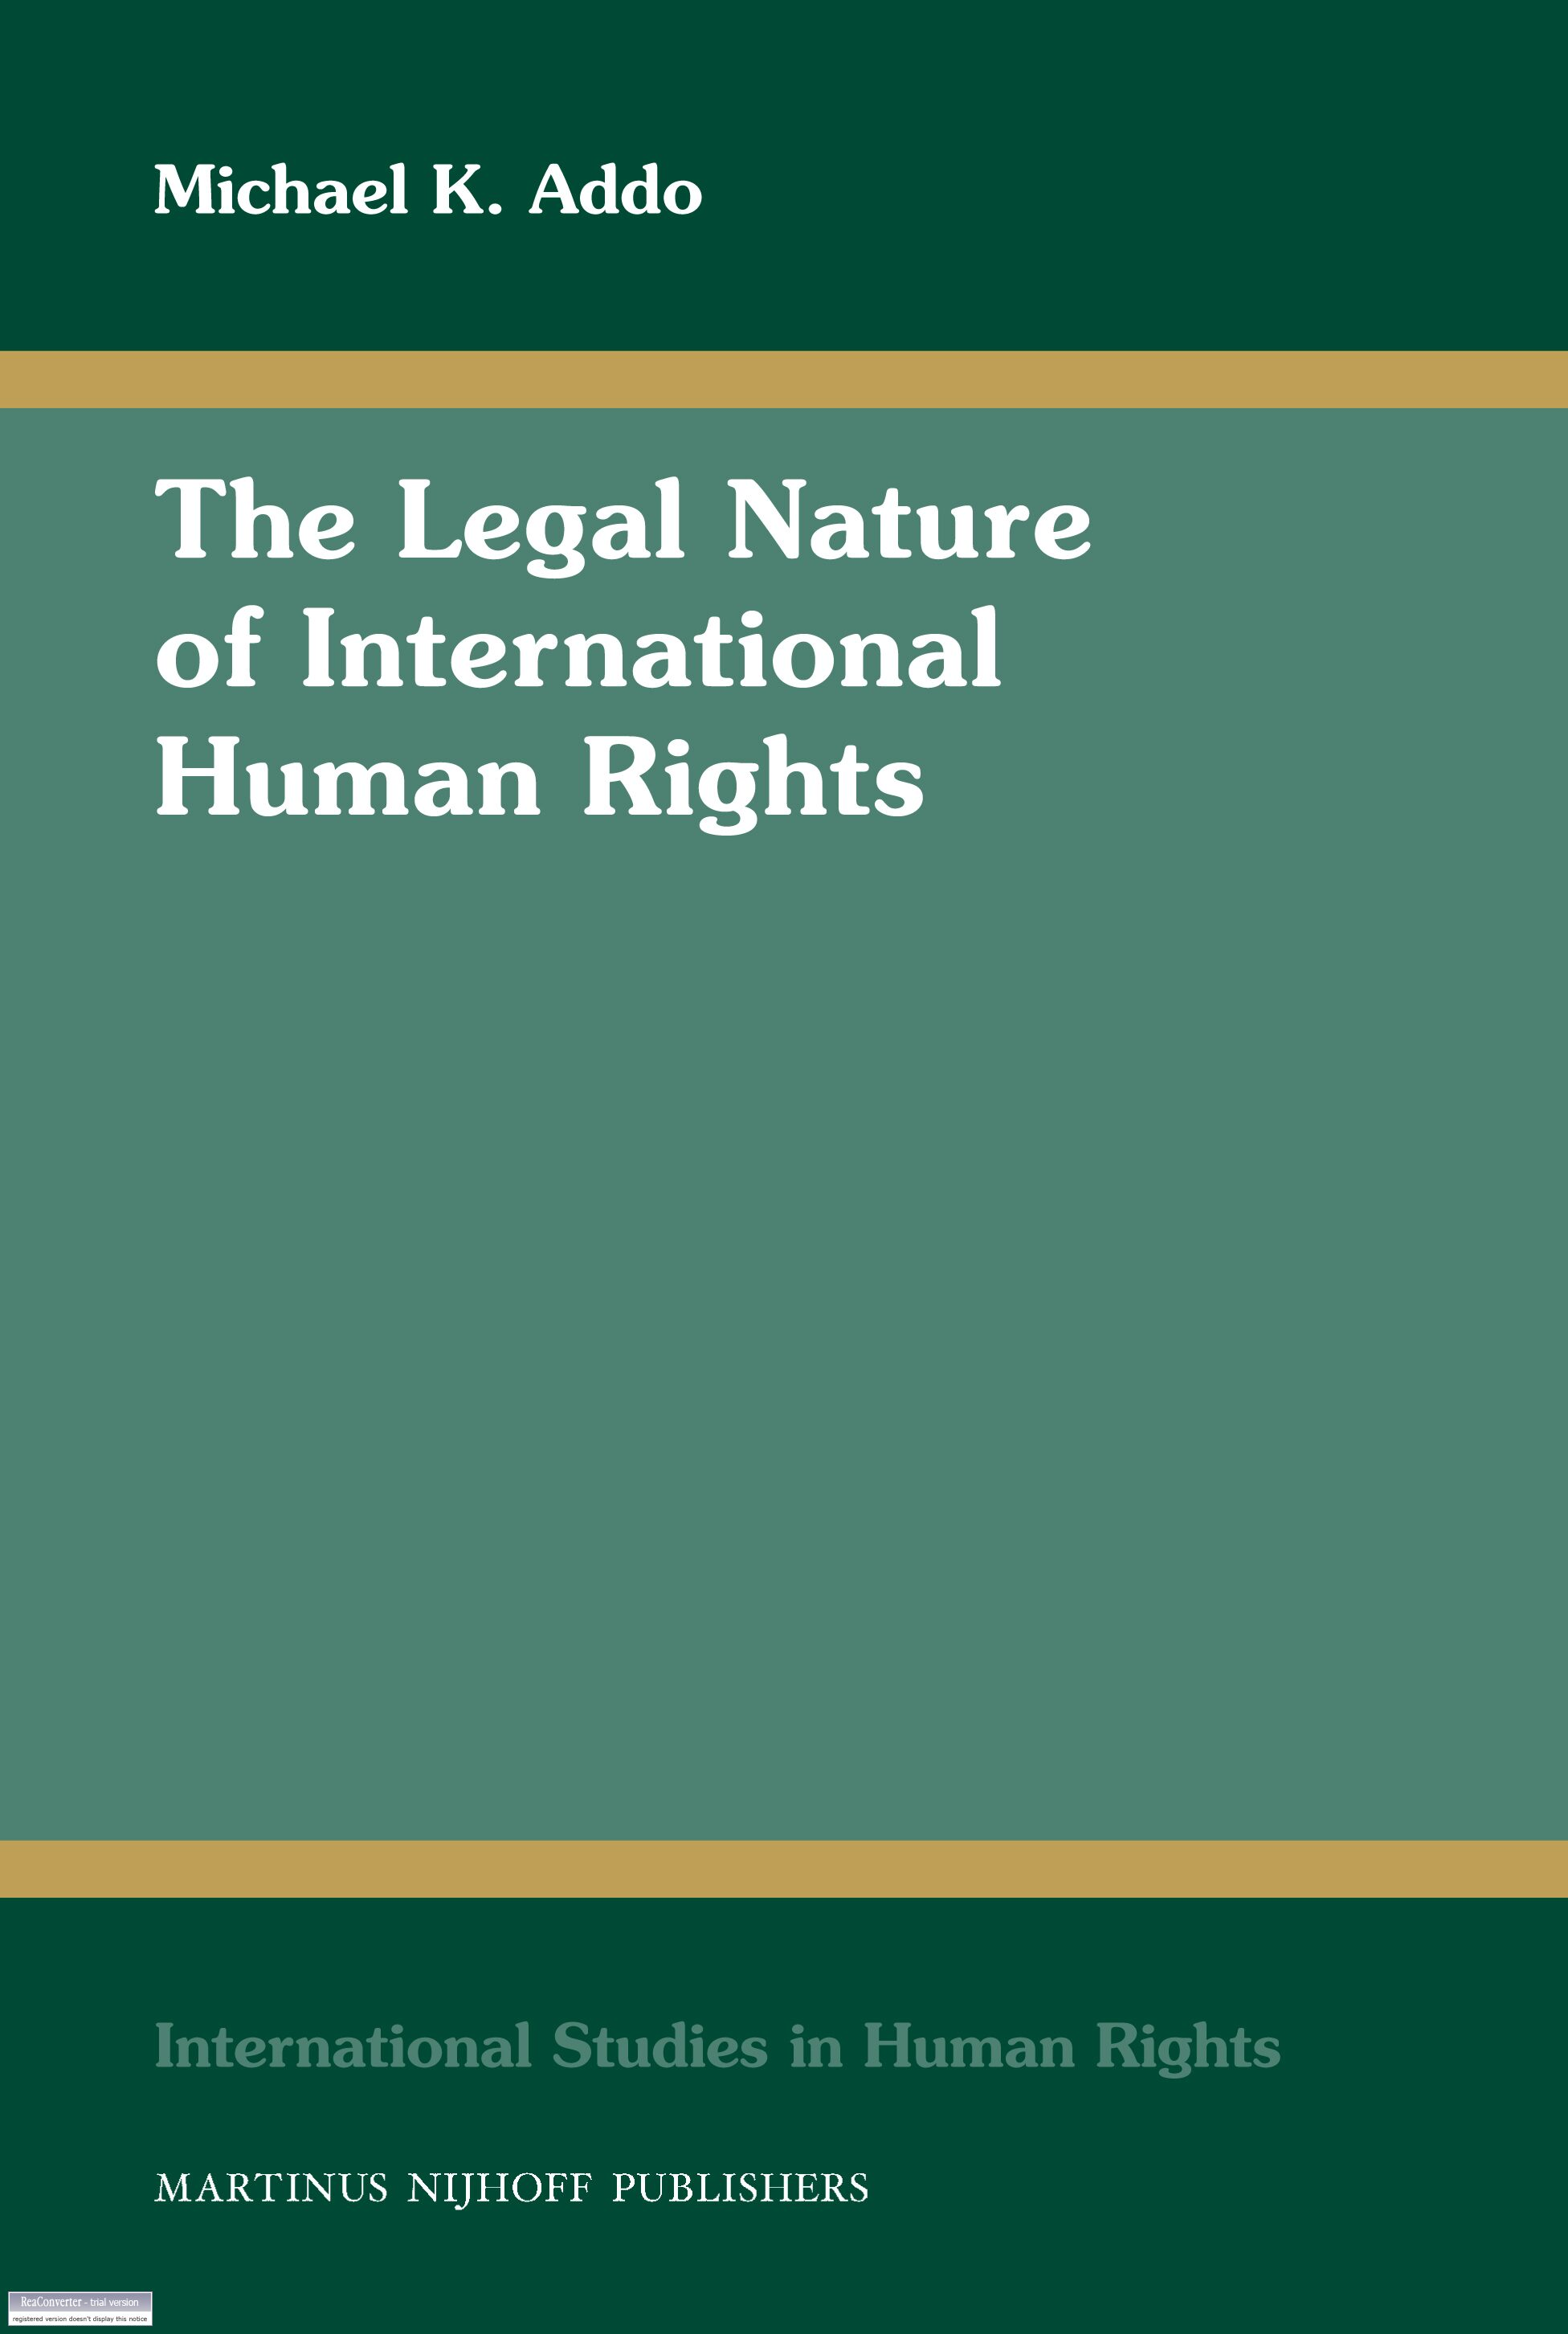 The Legal Nature of International Human Rights   Brill